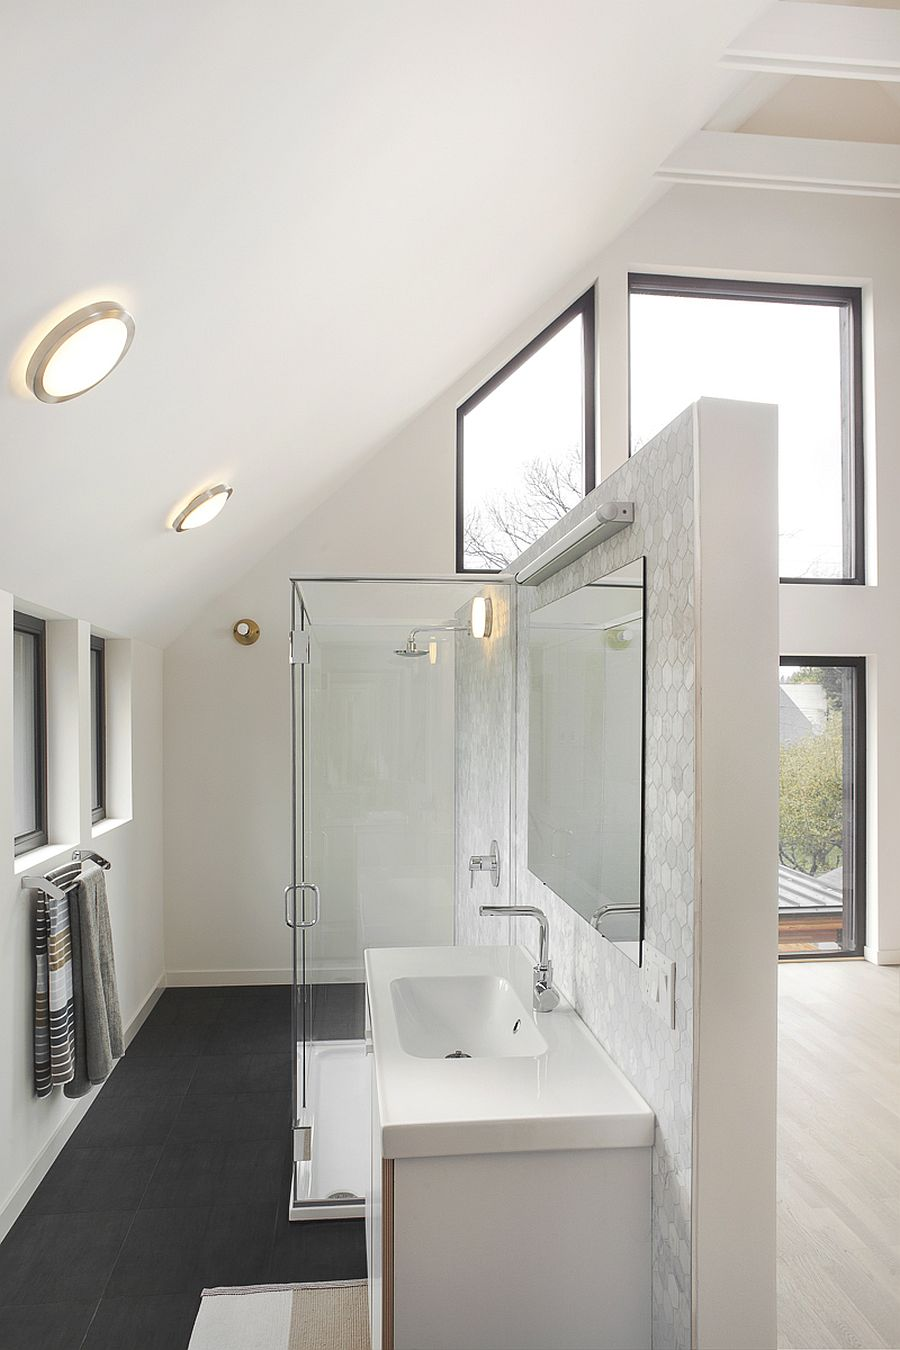 Contemporary bathroom in white has a spacious and cheerful appeal